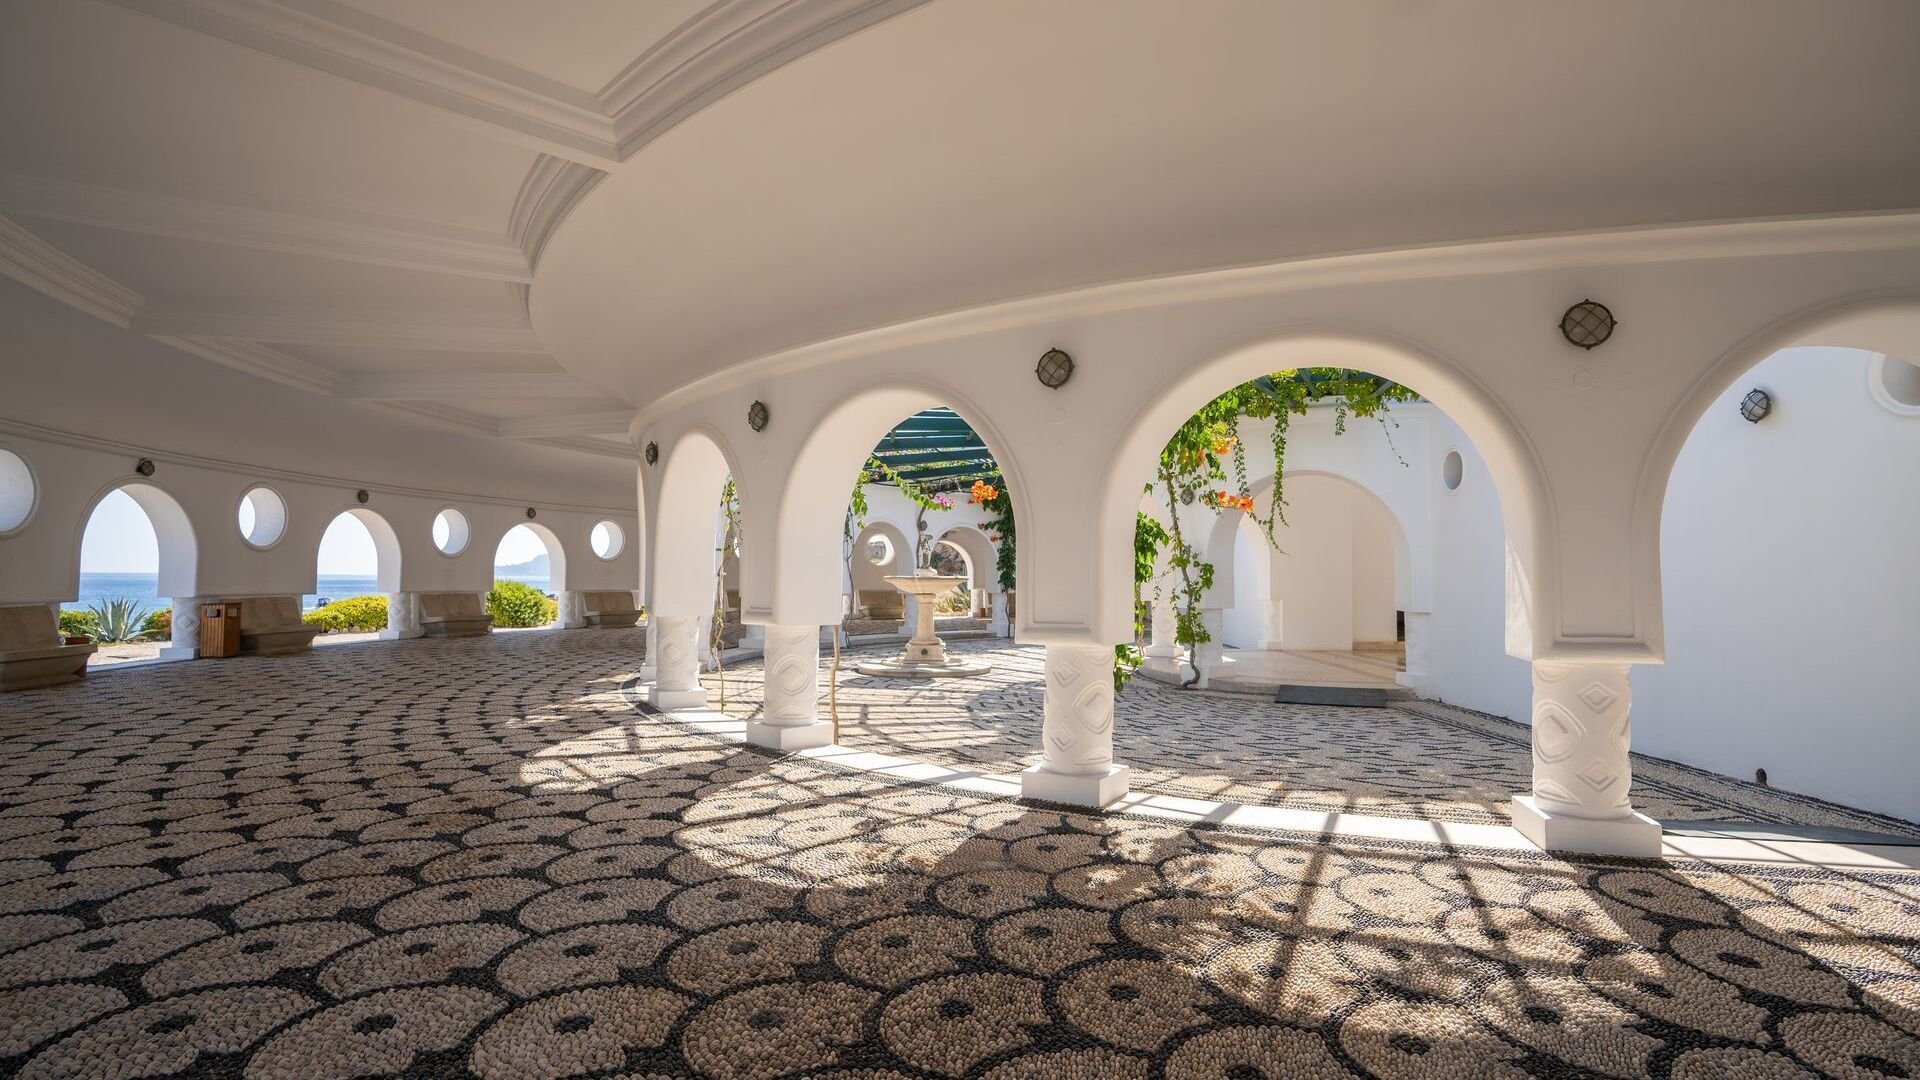 The Kallithea Springs, where you'll love the art deco feel and the pebble mosaics